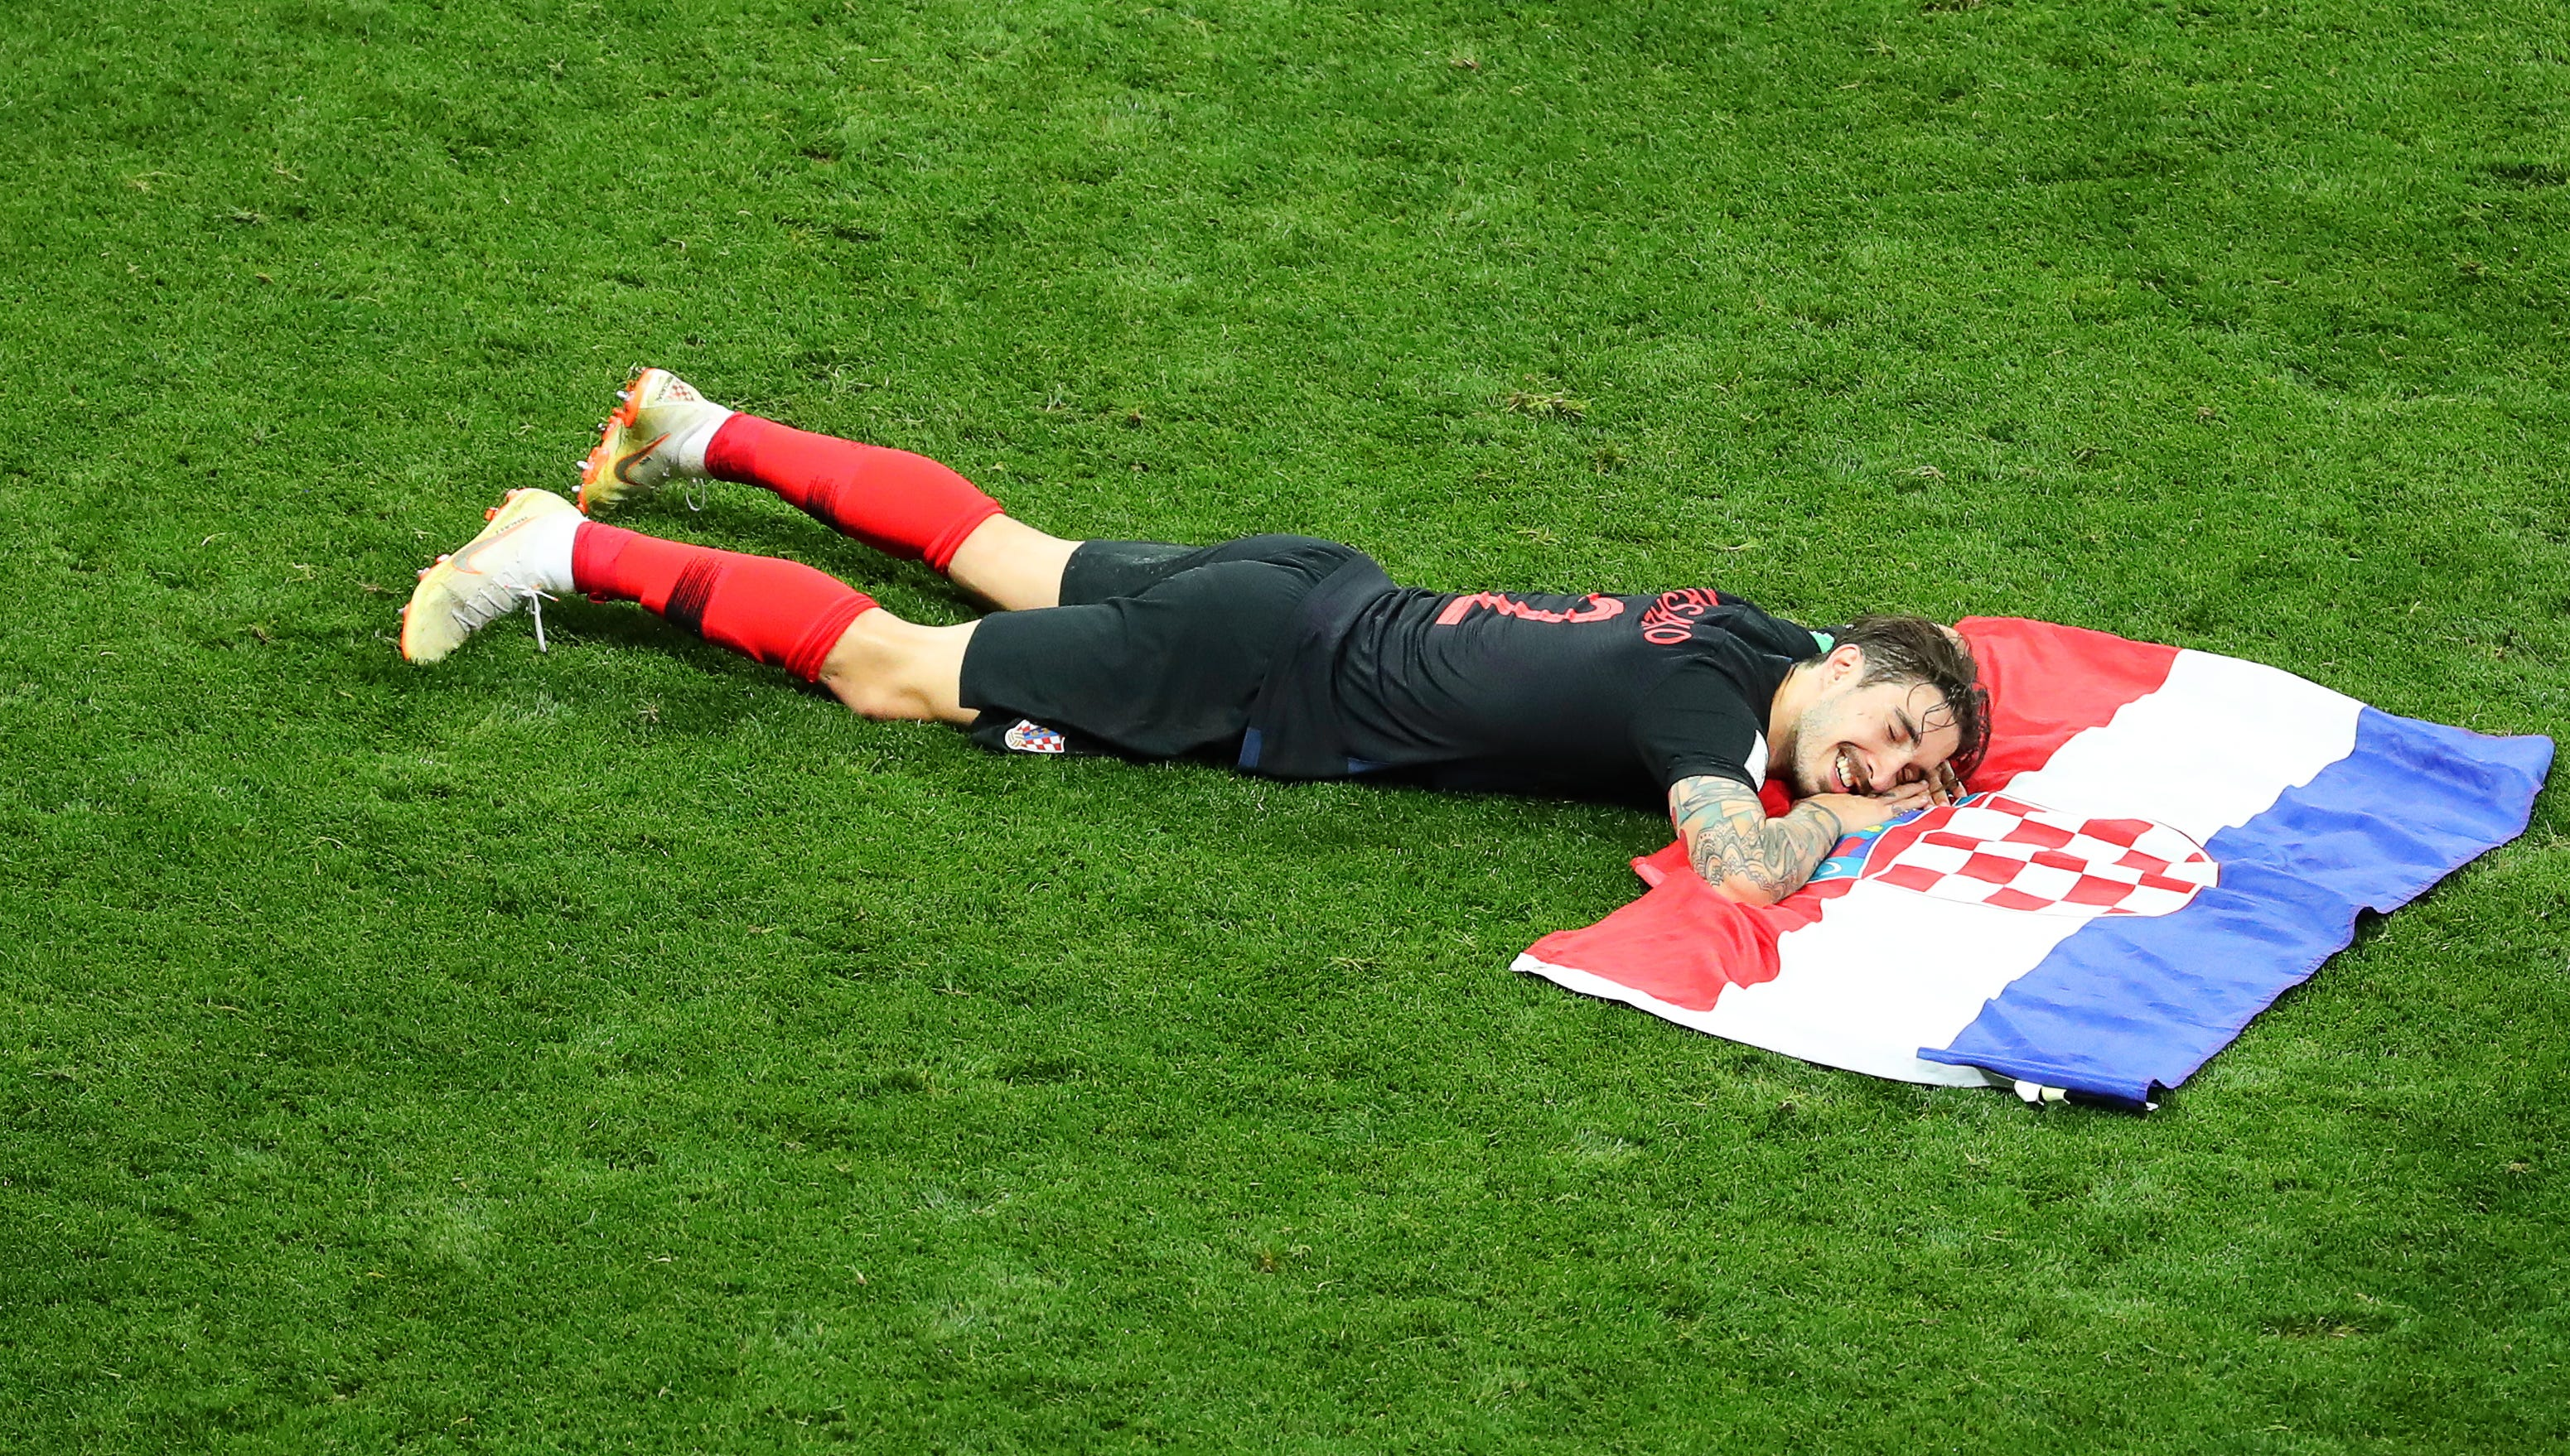 See Croatia celebrate on field after advancing to World Cup final